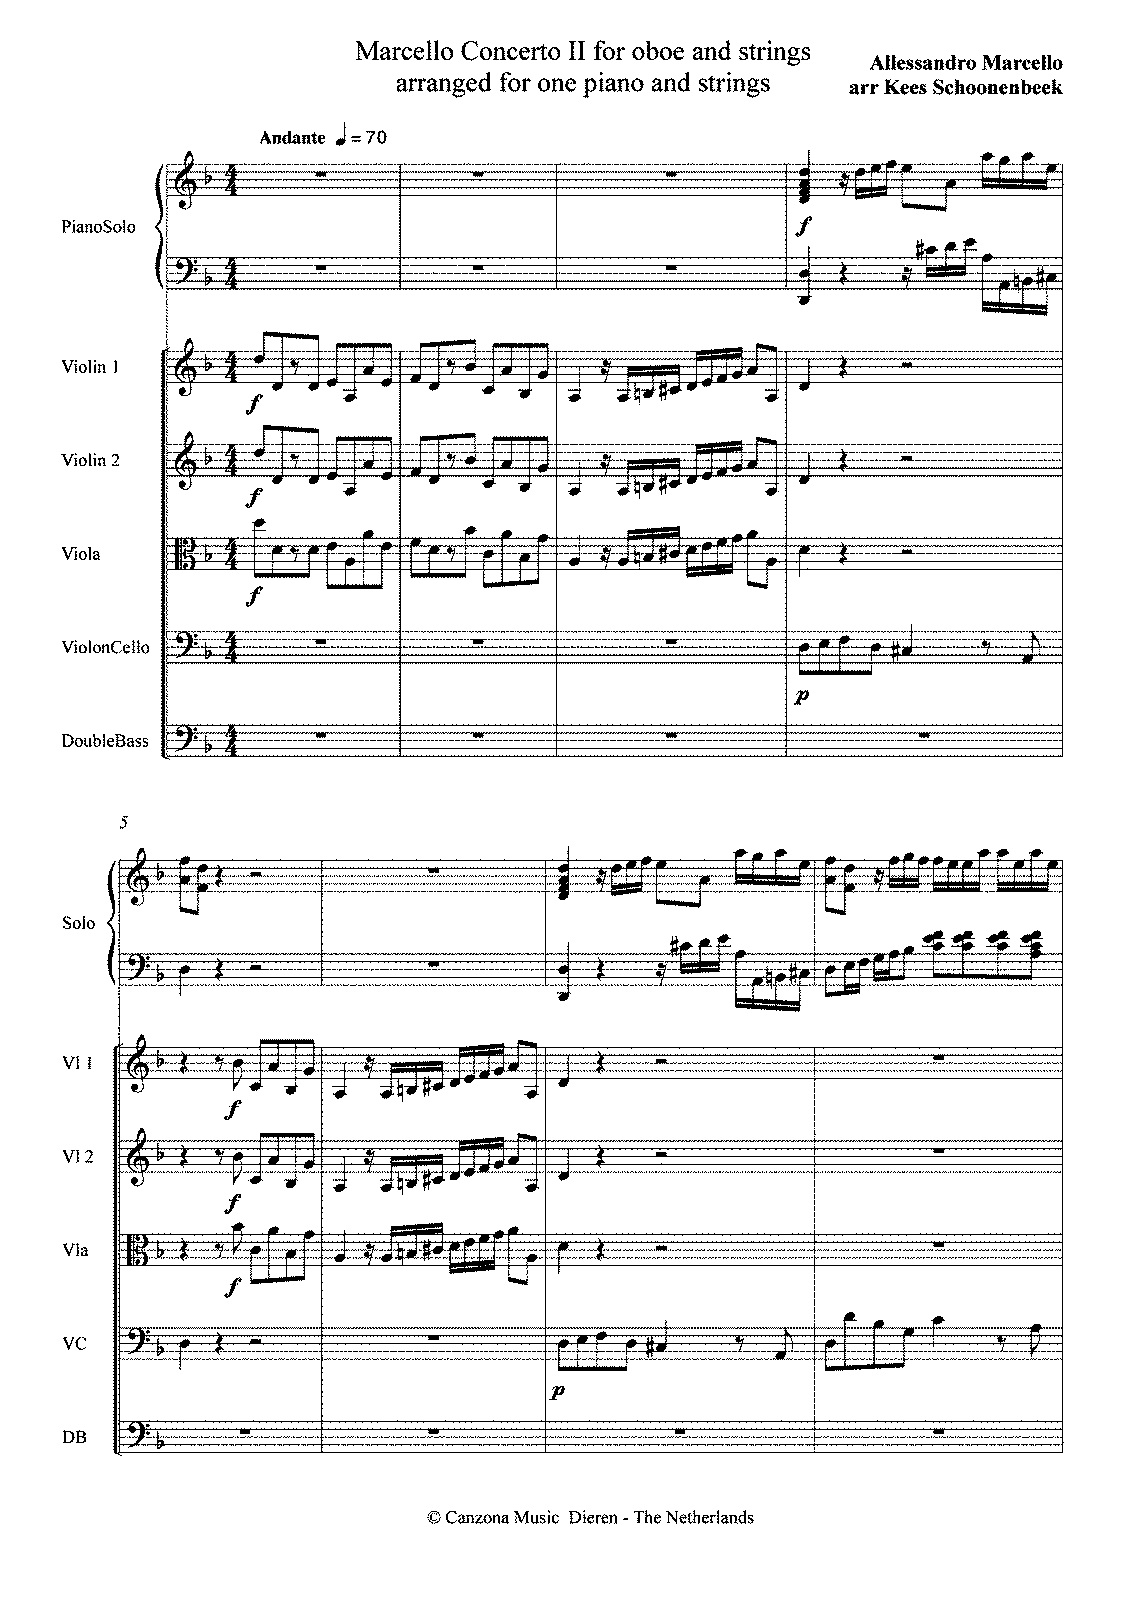 PMLP123123-Marcello Concerto II piano and strings.pdf